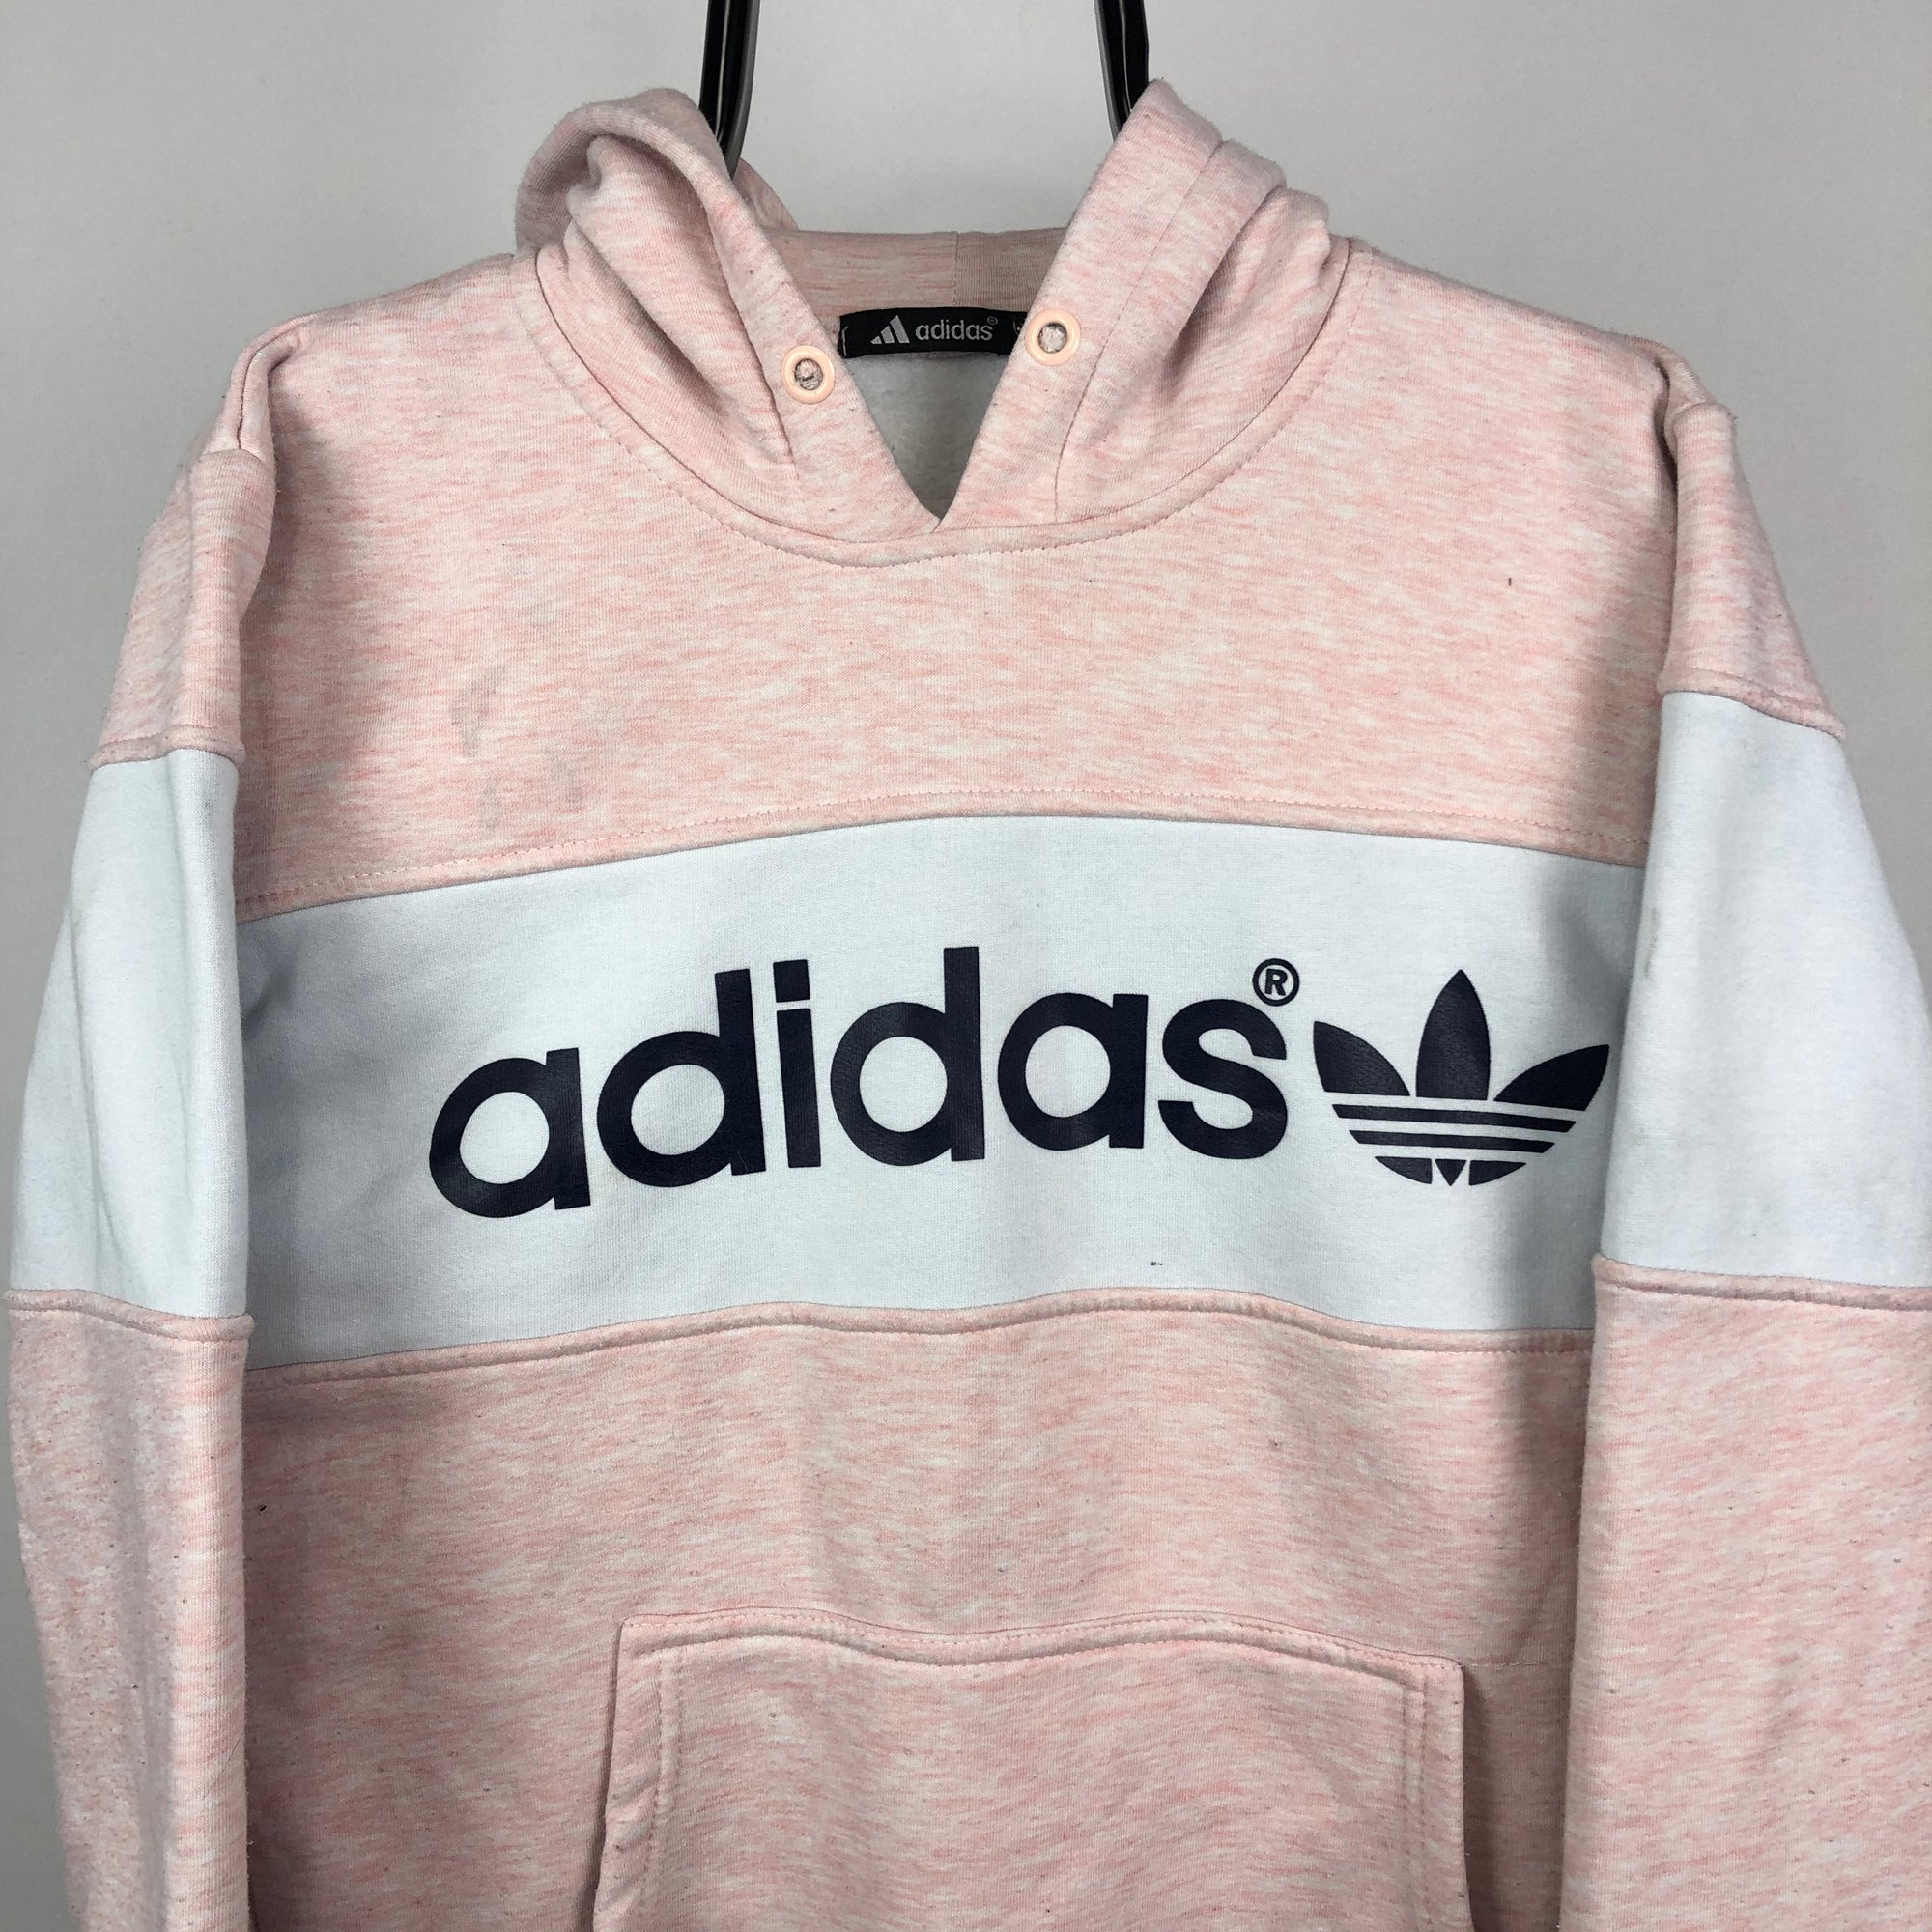 Adidas Spellout Hoodie in Pink/White - Men's Small/Women's Medium